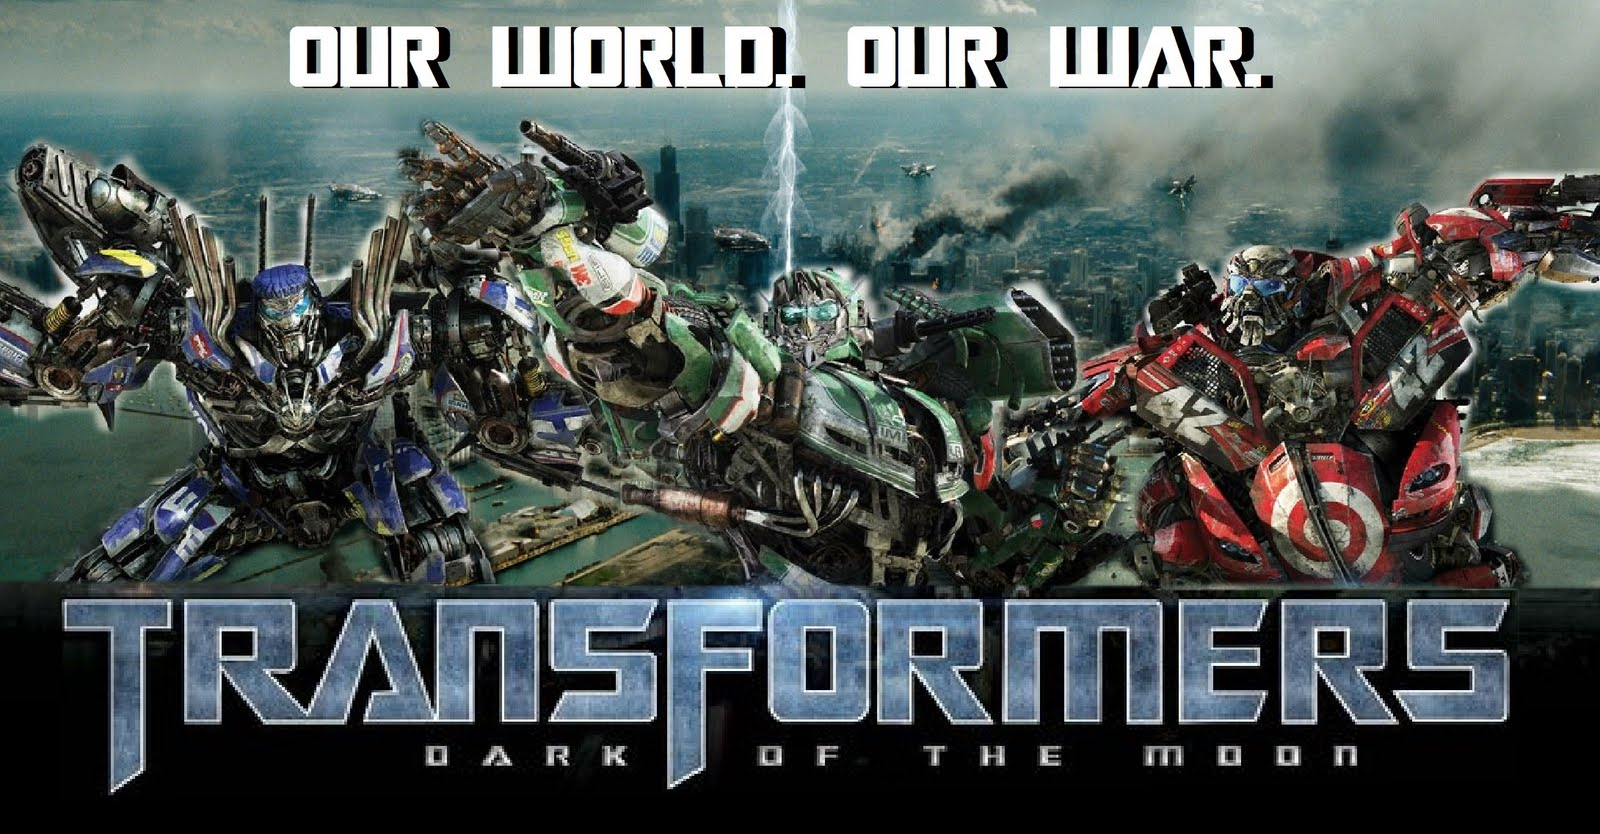 http://2.bp.blogspot.com/-AcNIBRd1BDQ/TfKPhr5DlyI/AAAAAAAAAM0/3E7p_oAIdQQ/s1600/transformers-3-dark-of-the-moon-fan-made-poster-2.jpg